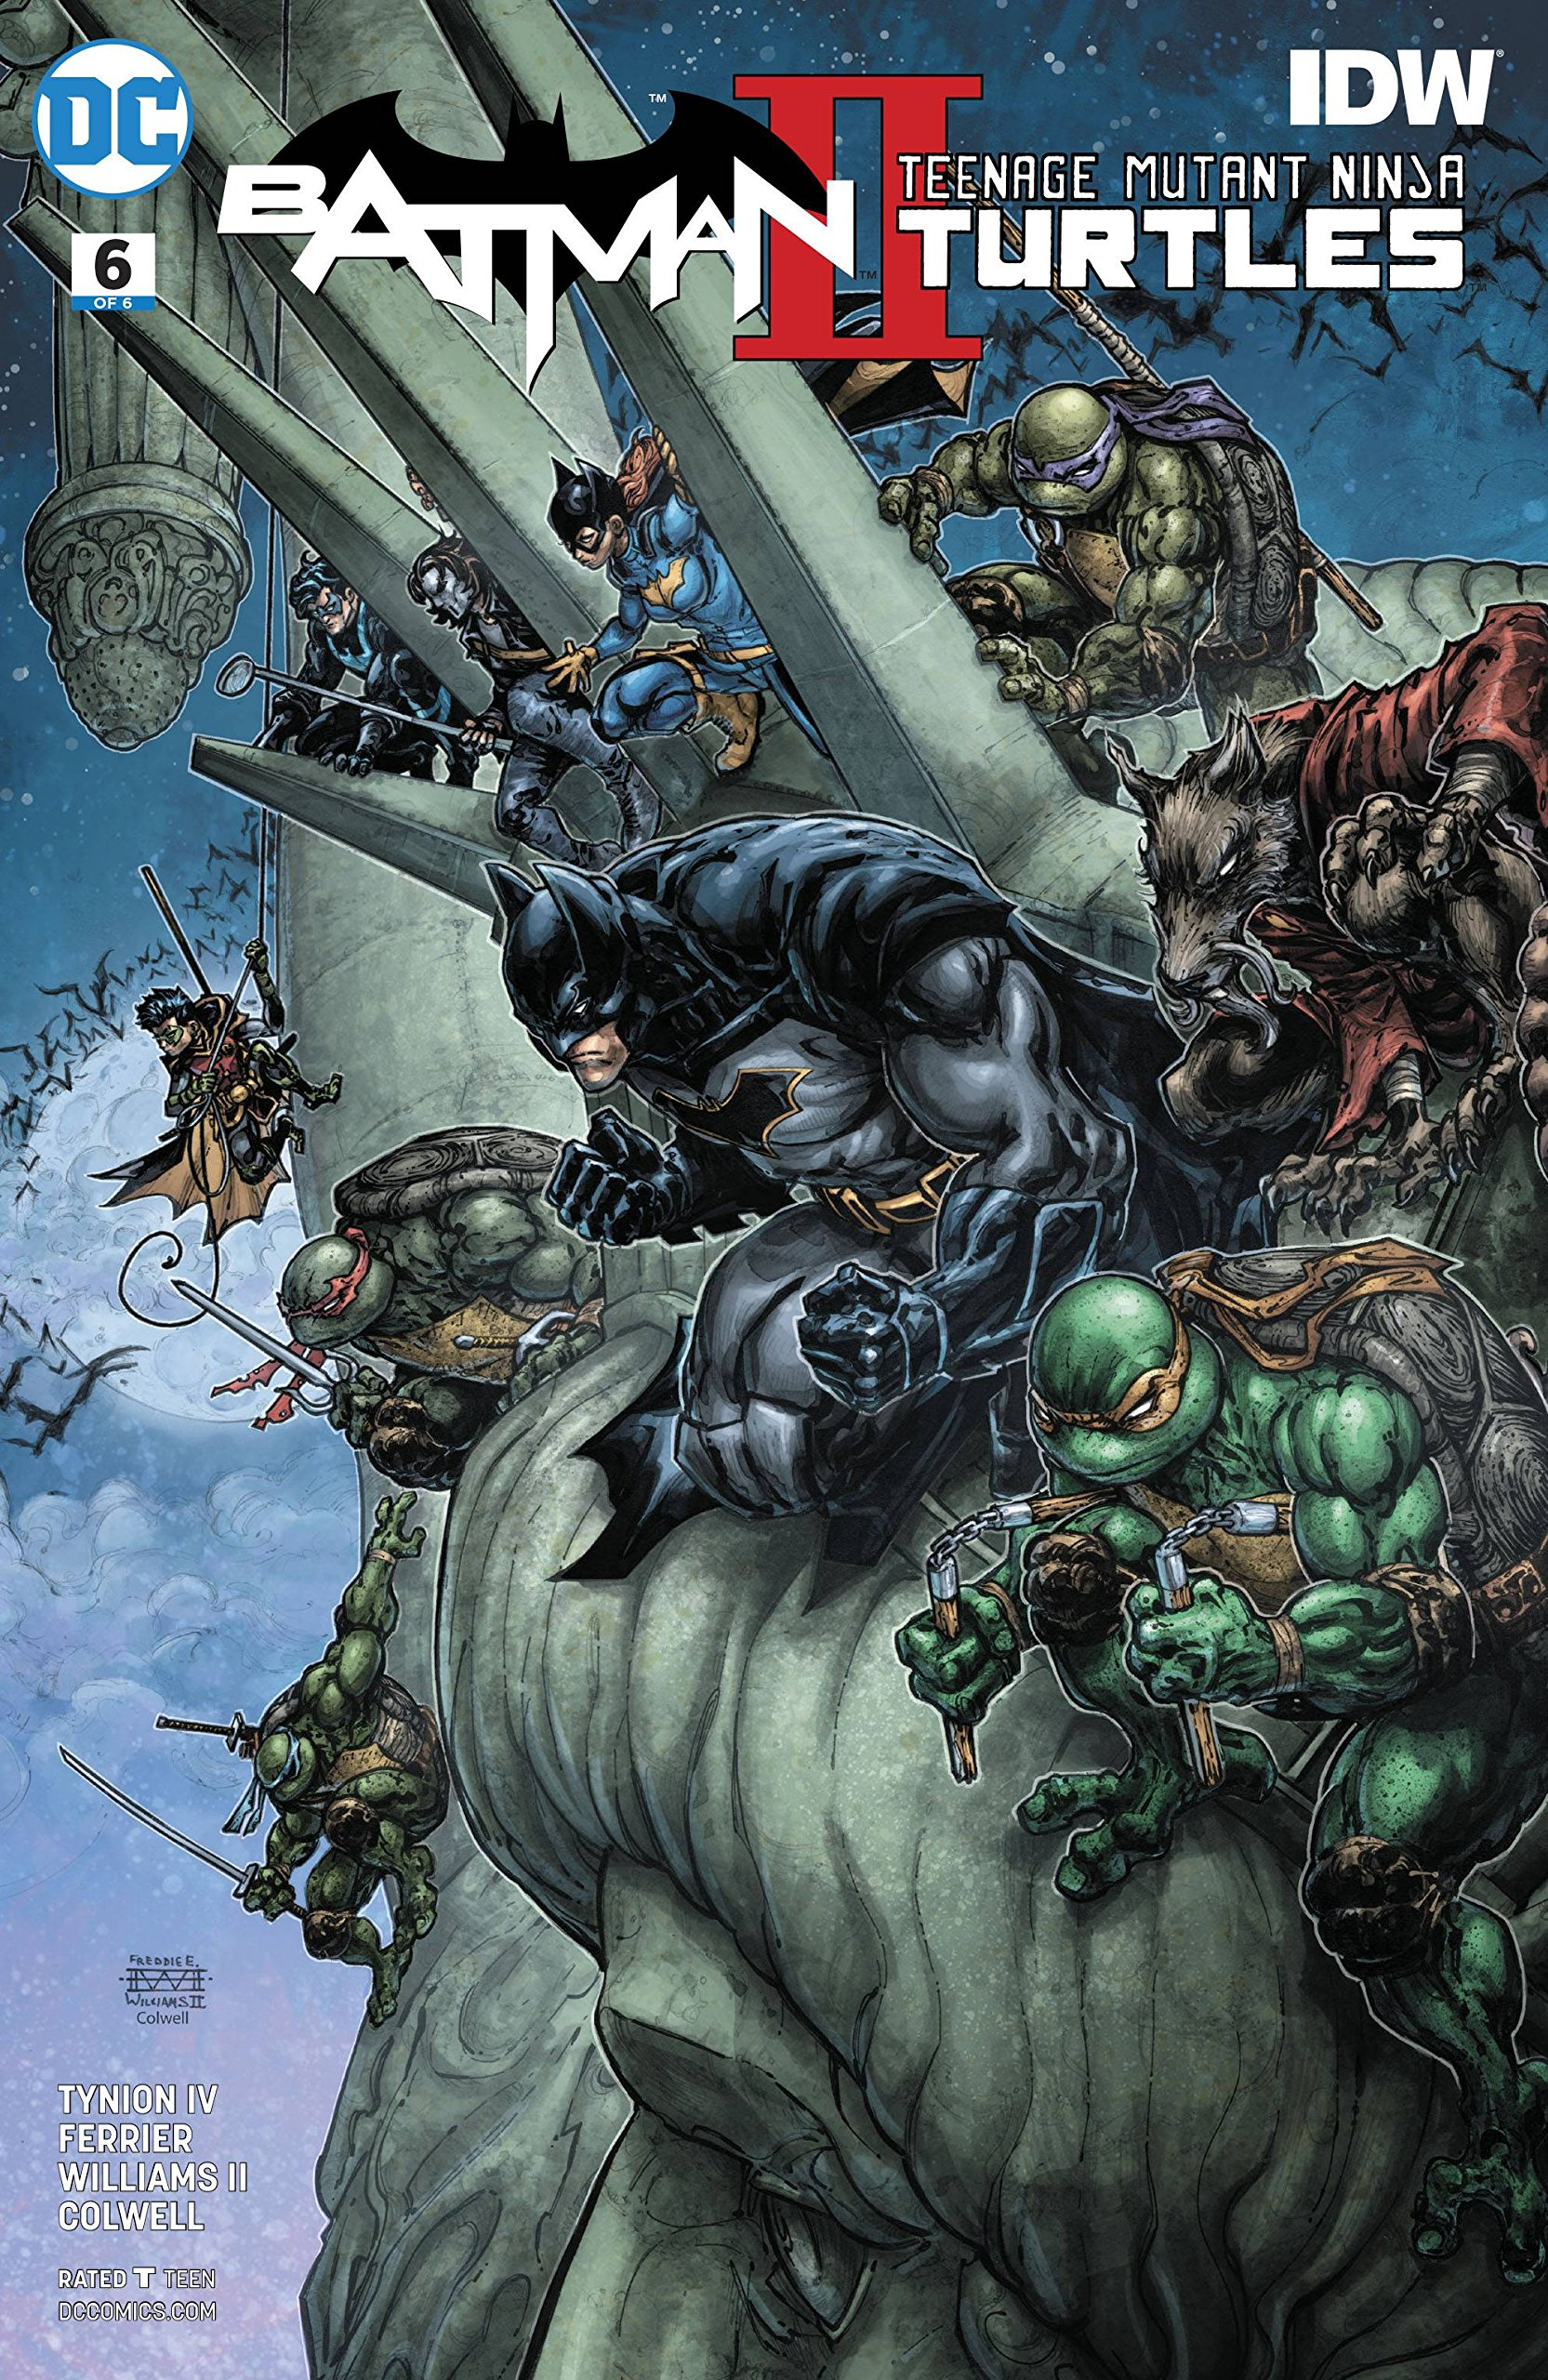 BATMAN TEENAGE MUTANT NINJA TURTLES II #6 REGULAR CVR: James ...